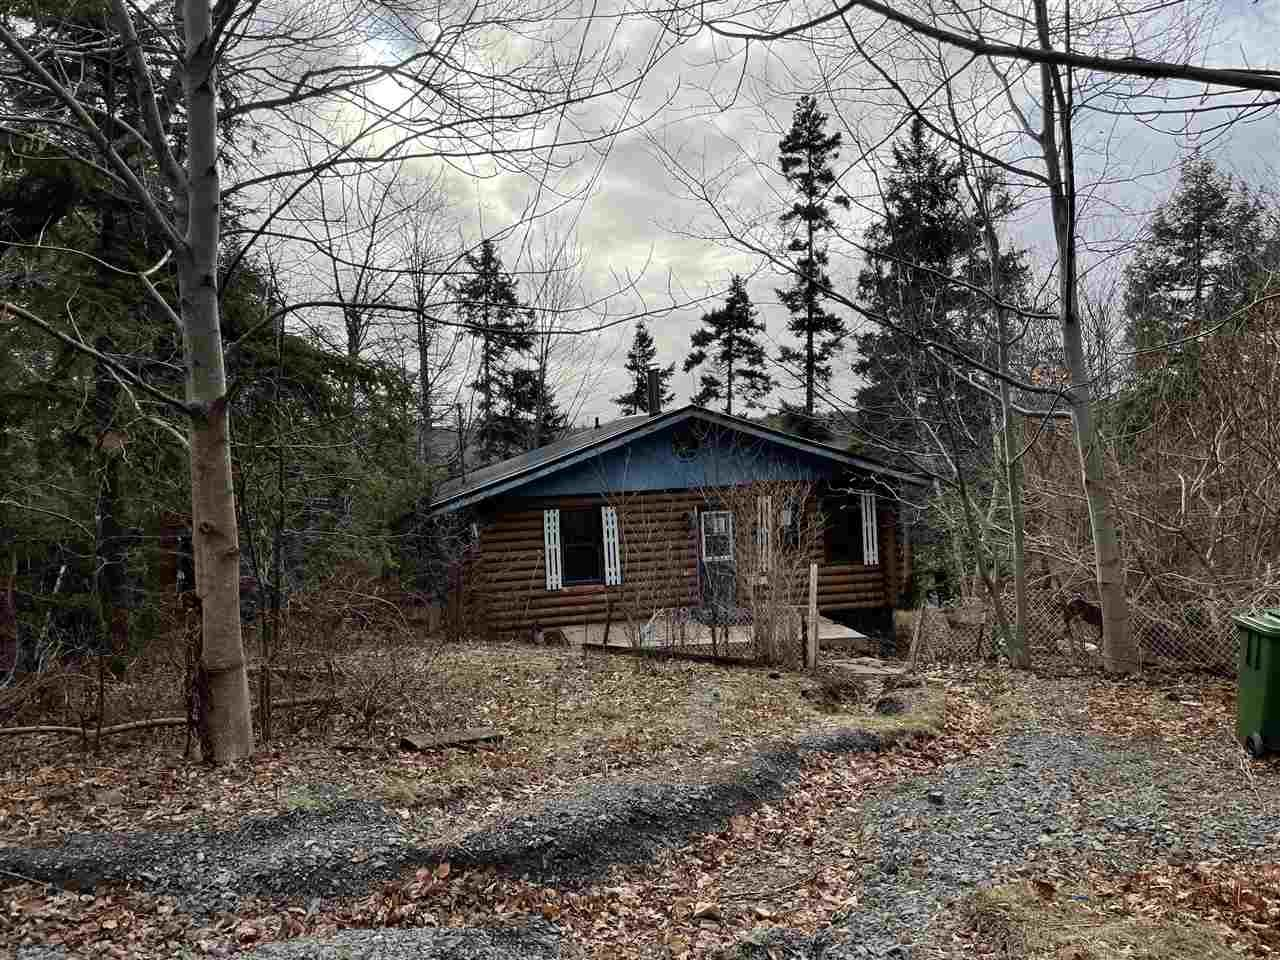 Main Photo: 2719 HAMILTON Road in Westville: 108-Rural Pictou County Residential for sale (Northern Region)  : MLS®# 202025518